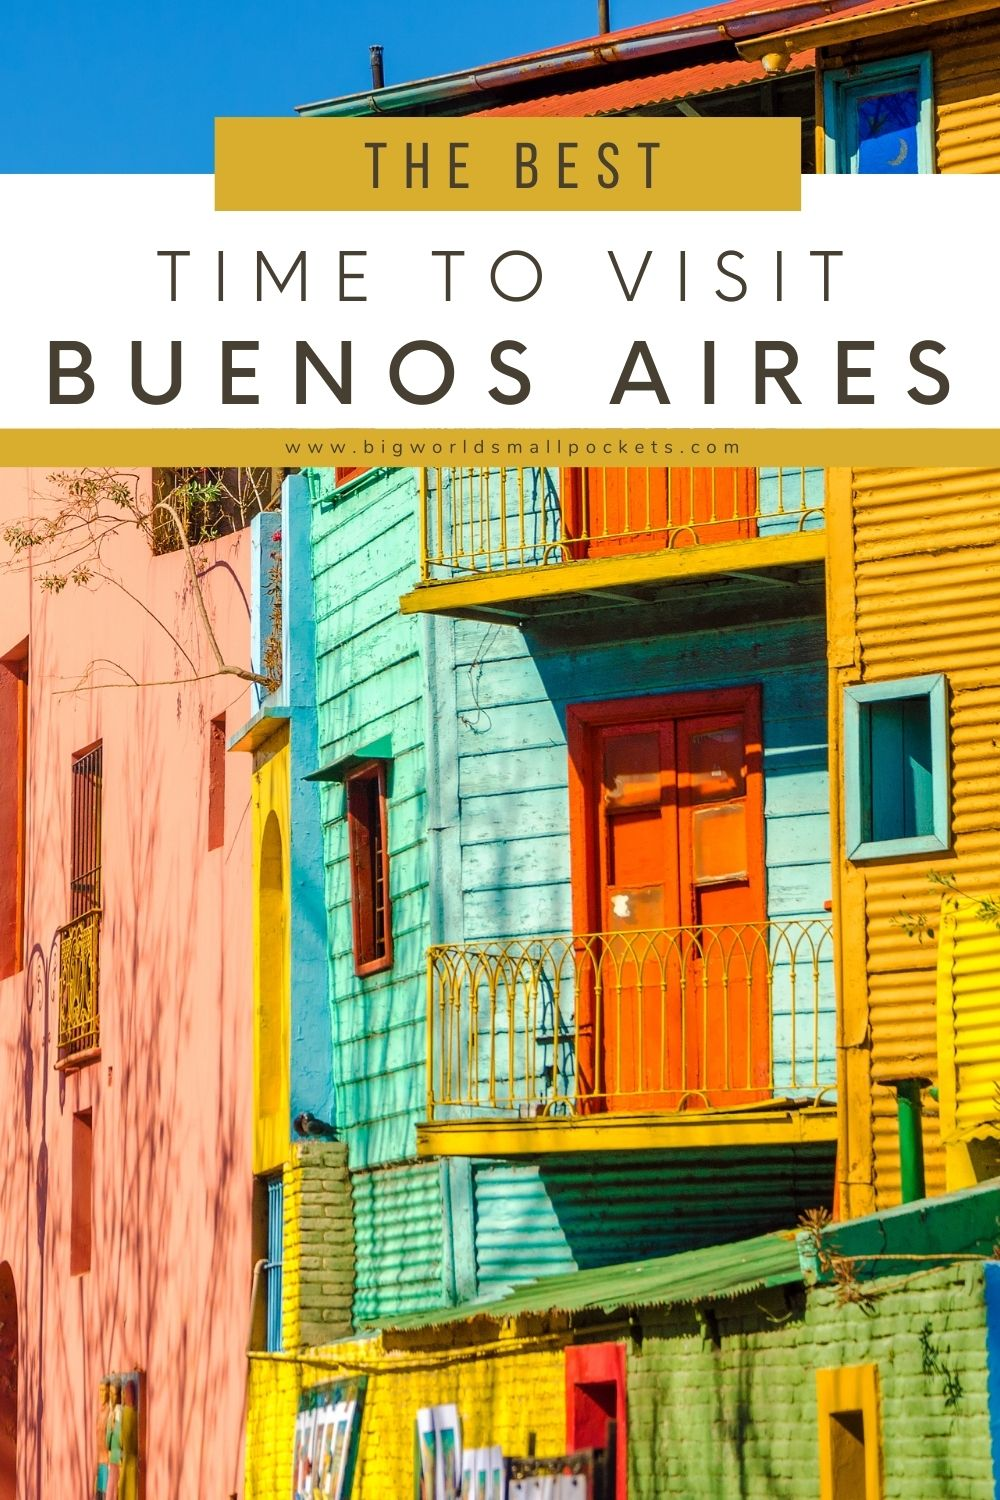 The Best Time to Visit Buneos Aires in Argentina